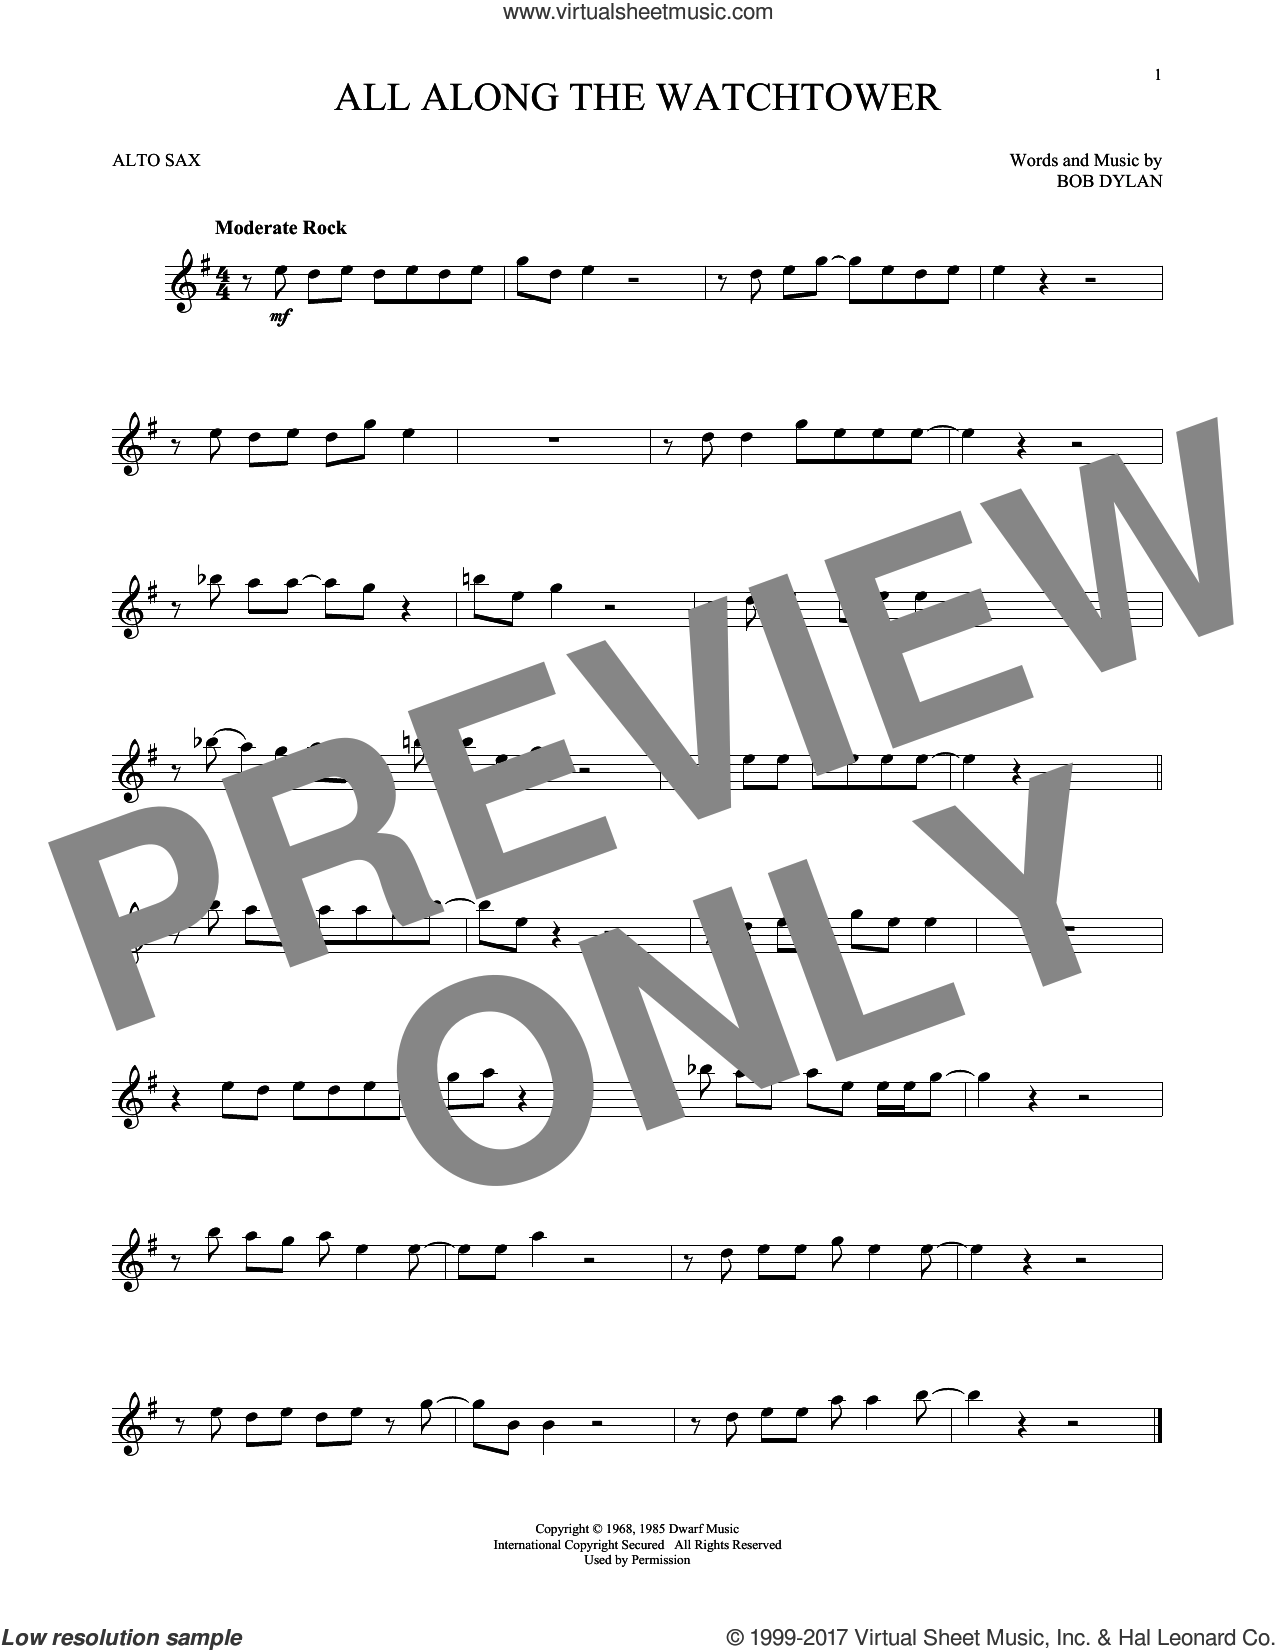 All Along The Watchtower sheet music for alto saxophone solo by Bob Dylan, intermediate skill level